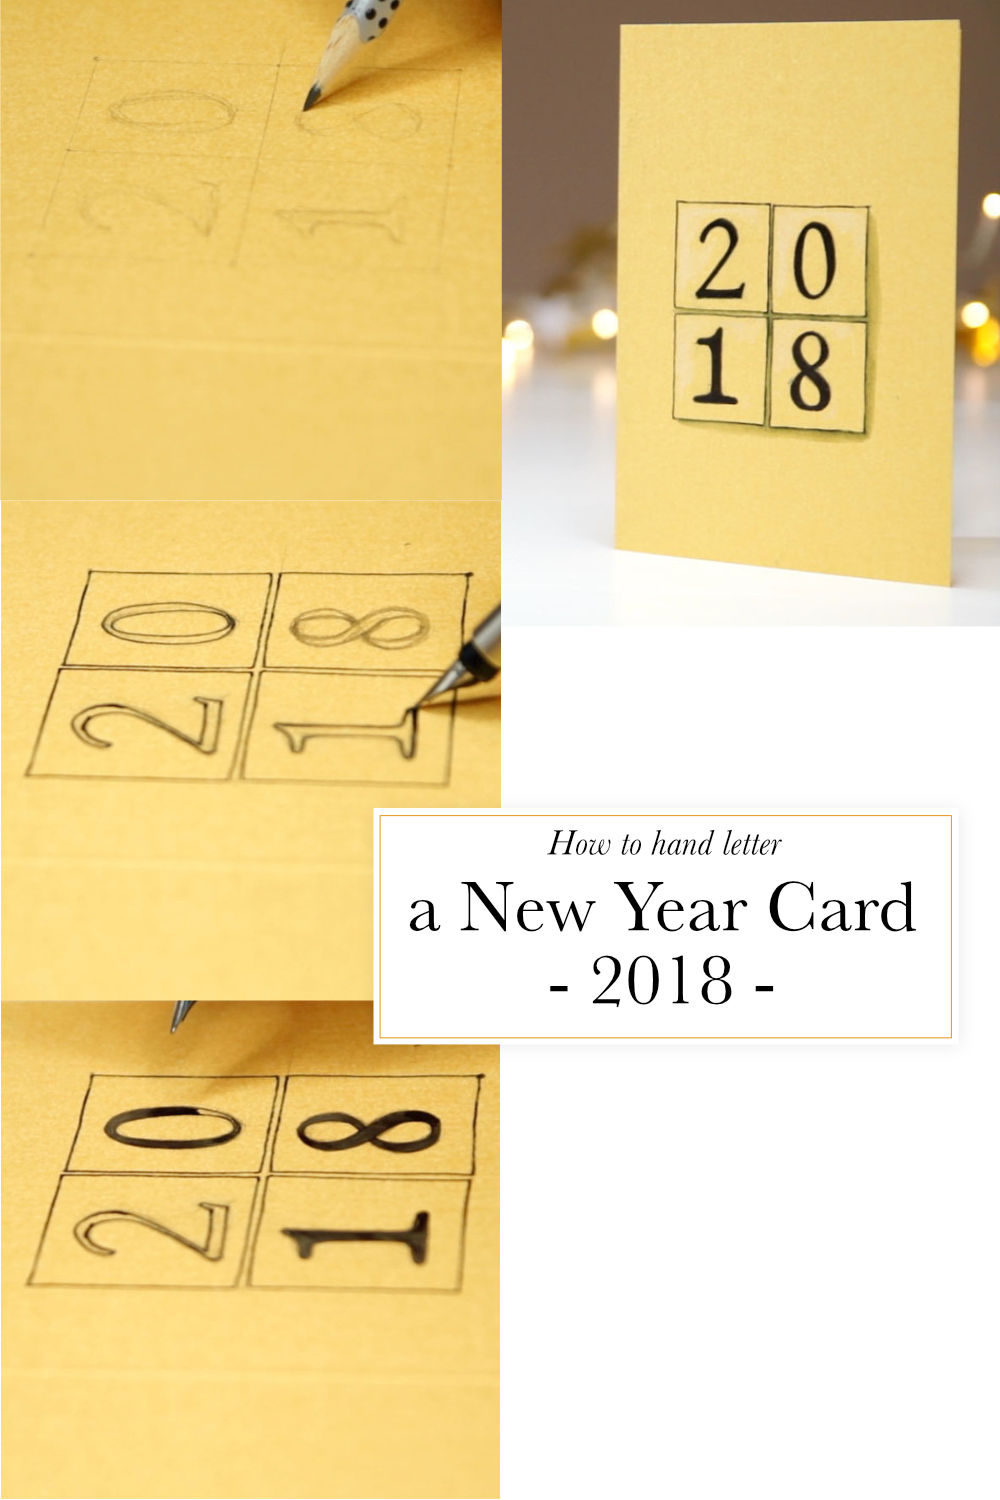 How to hand letter a New Year card |  by The Daily Atelier